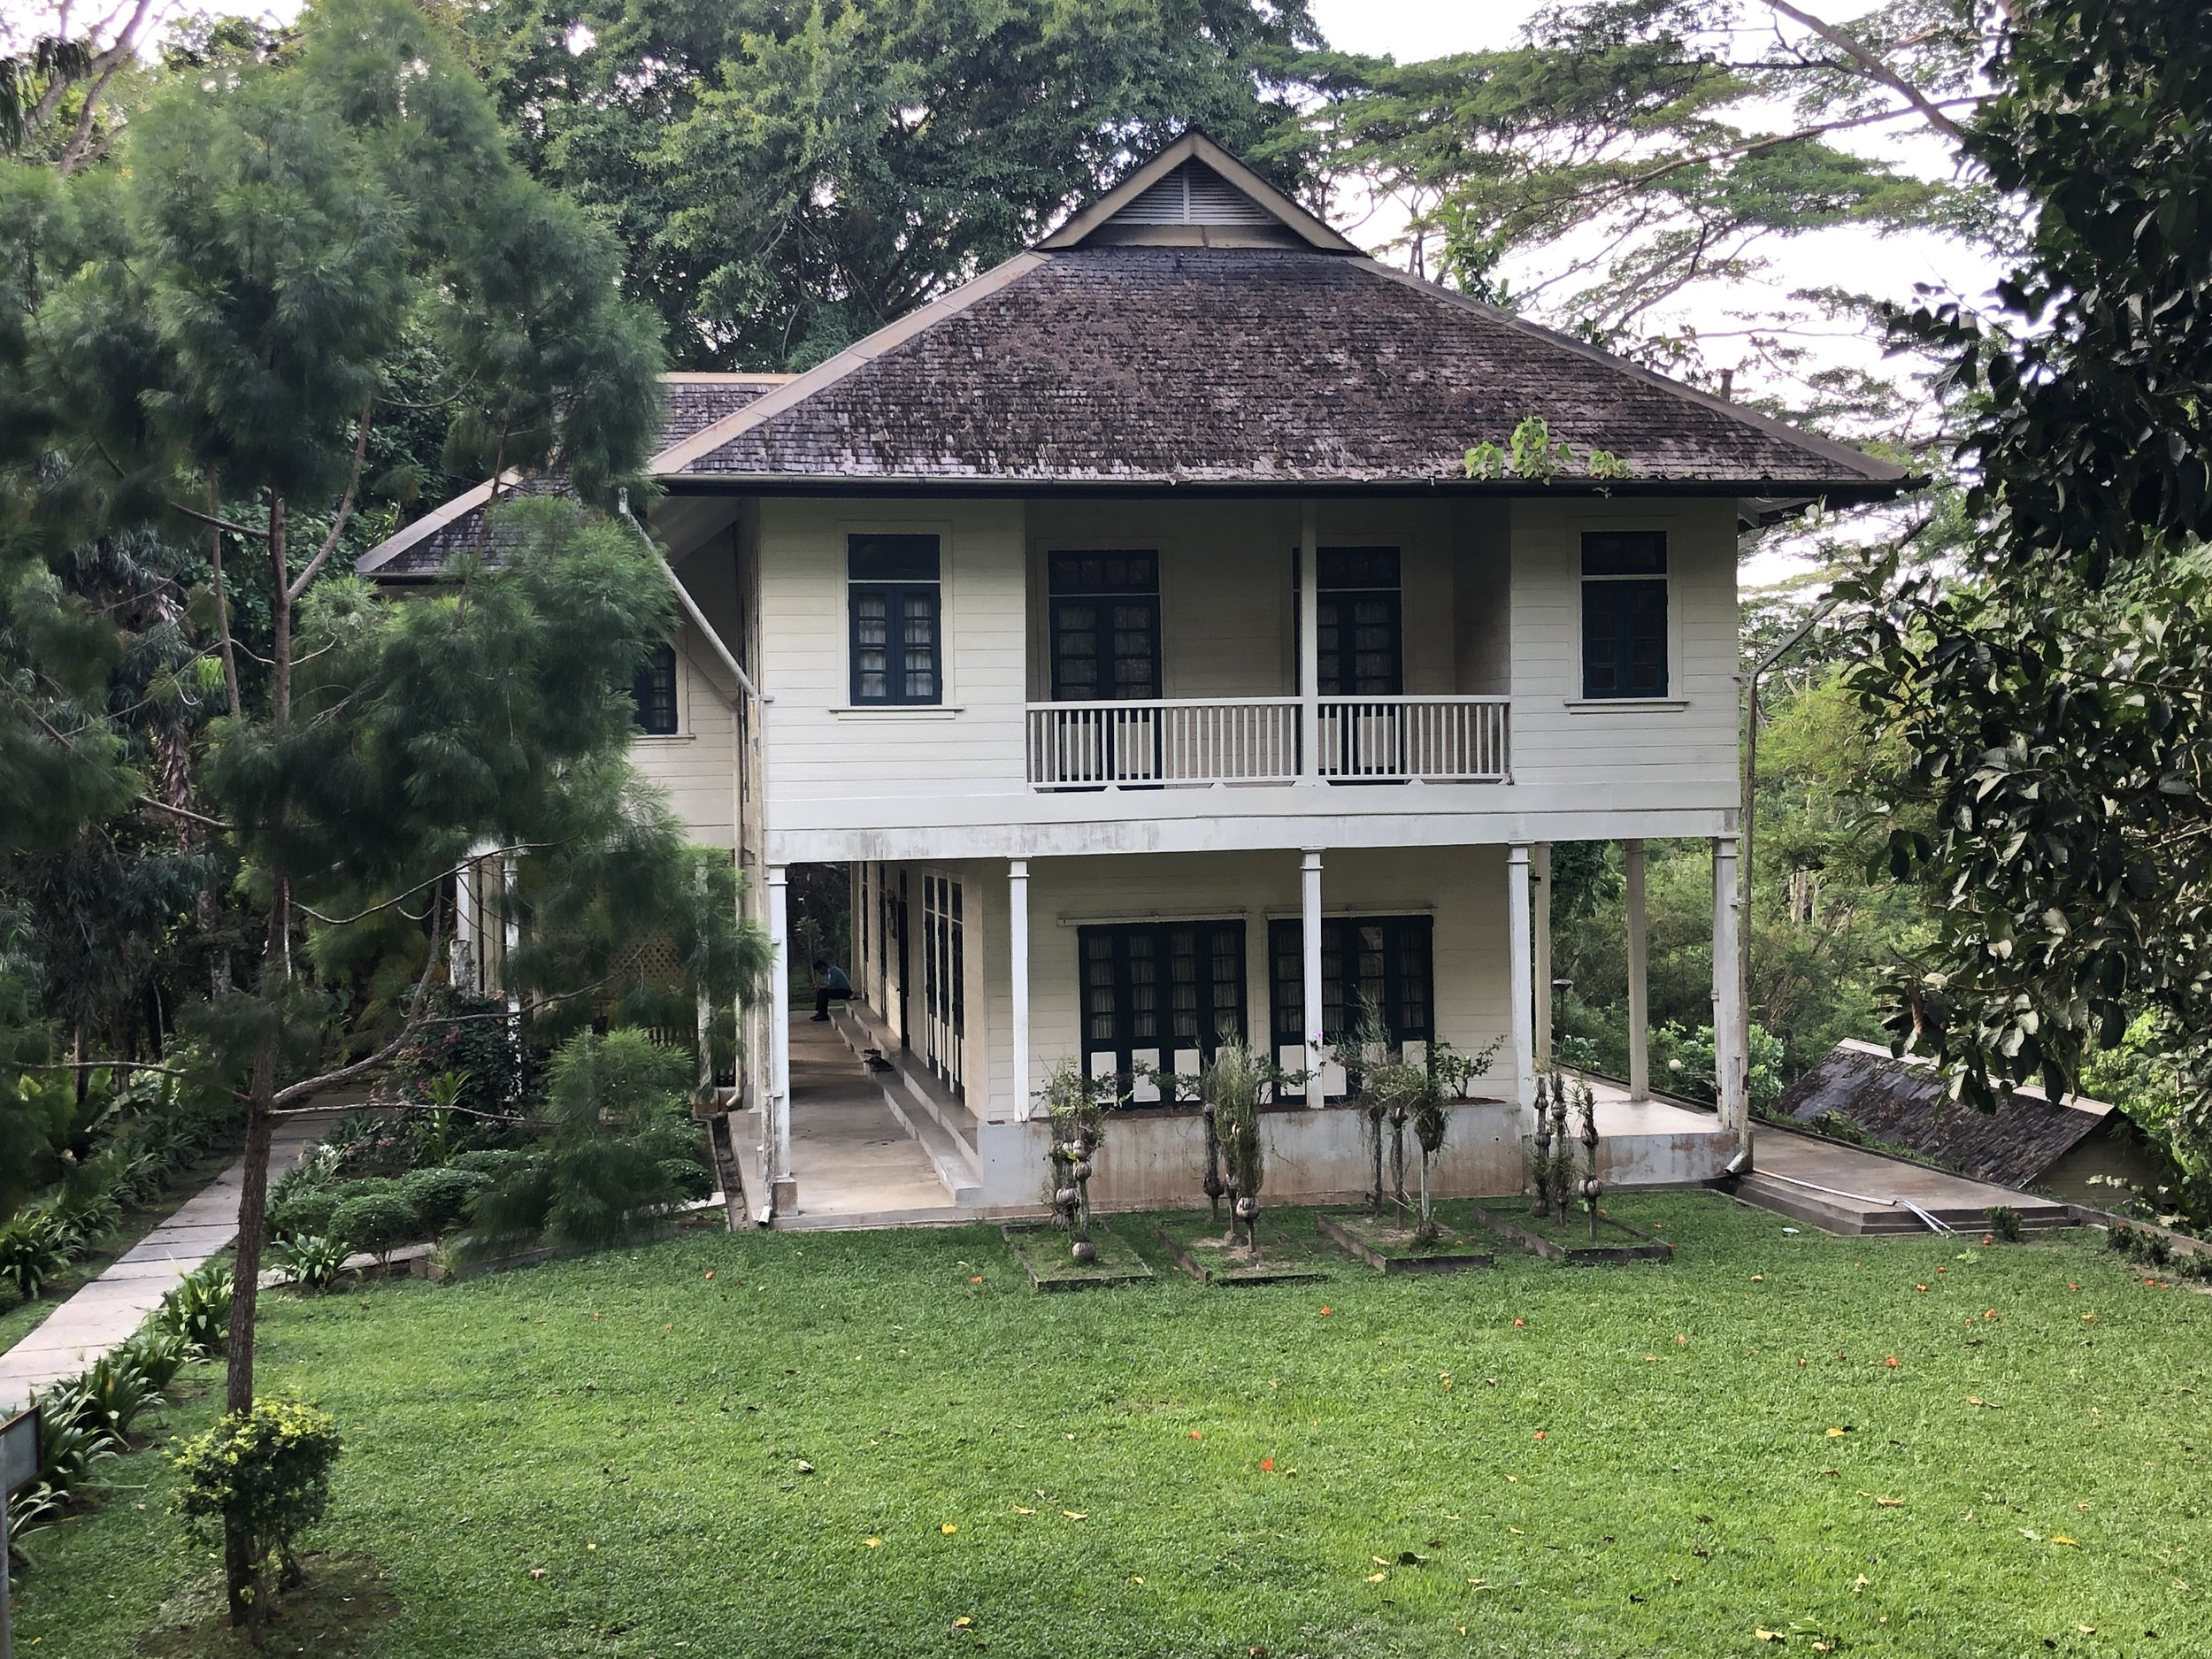 Agnes Keith House where she wrote her trilogy of books about life in colonial post-war North Borneo